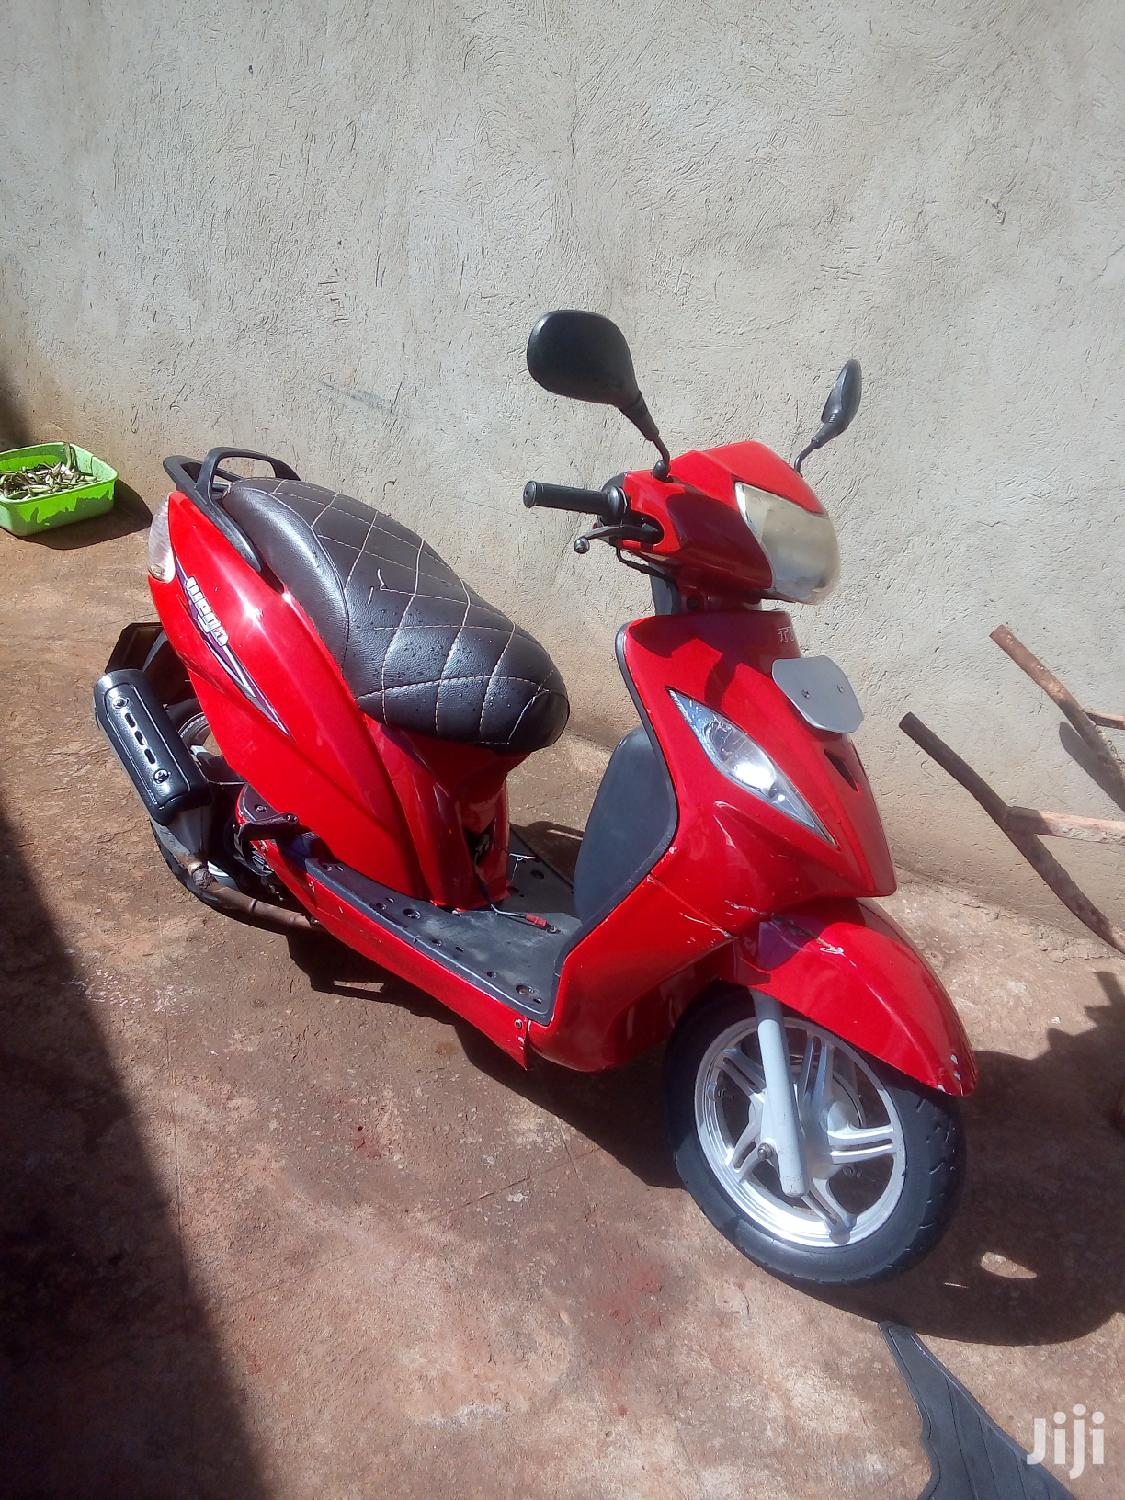 TVS Apache 180 RTR 2013 Red | Motorcycles & Scooters for sale in Kampala, Central Region, Uganda